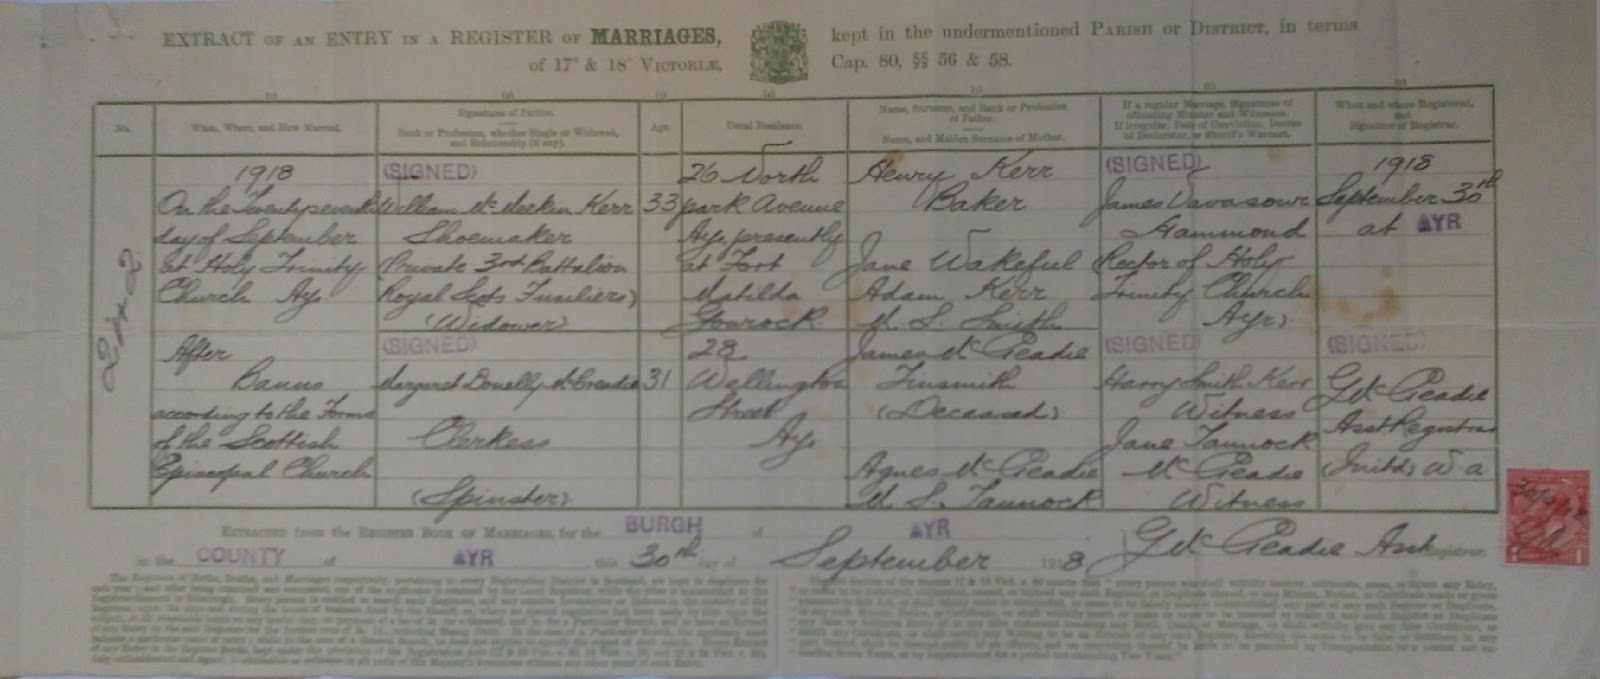 C:\Users\Main user\Pictures\Kerr Certificates\William Kerr and Margaret McCreadie Marriage Certificate.JPG